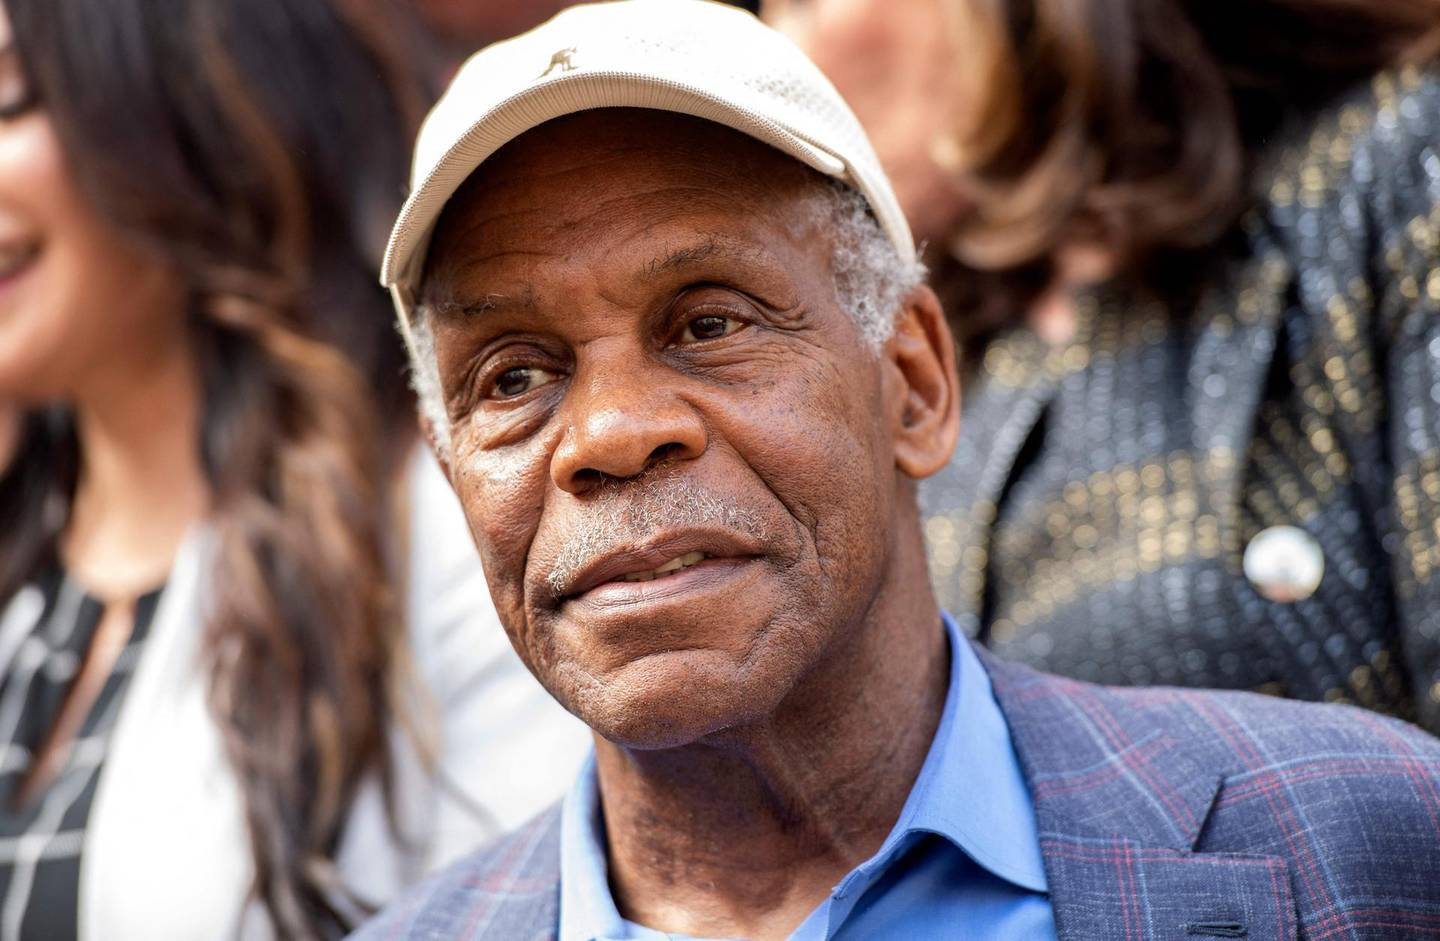 """(FILES) In this file photo taken on May 19, 2021 actor Danny Glover attends the """"Save The Performing Arts Act of 2021"""" press conference in Los Angeles, California. Actors Samuel L Jackson and Danny Glover, Norwegian actress Liv Ullmann and actress-director Elaine May will receive honorary Oscars ahead of the main 2022 gala, the Academy of Motion Picture Arts and Sciences announced Thursday. Jackson, May and Ullmann will be given honorary stauettes, while Glover will receive the Jean Hersholt Humanitarian Award at the Governors Awards on January 15, the Academy said in a statement. / AFP / VALERIE MACON"""